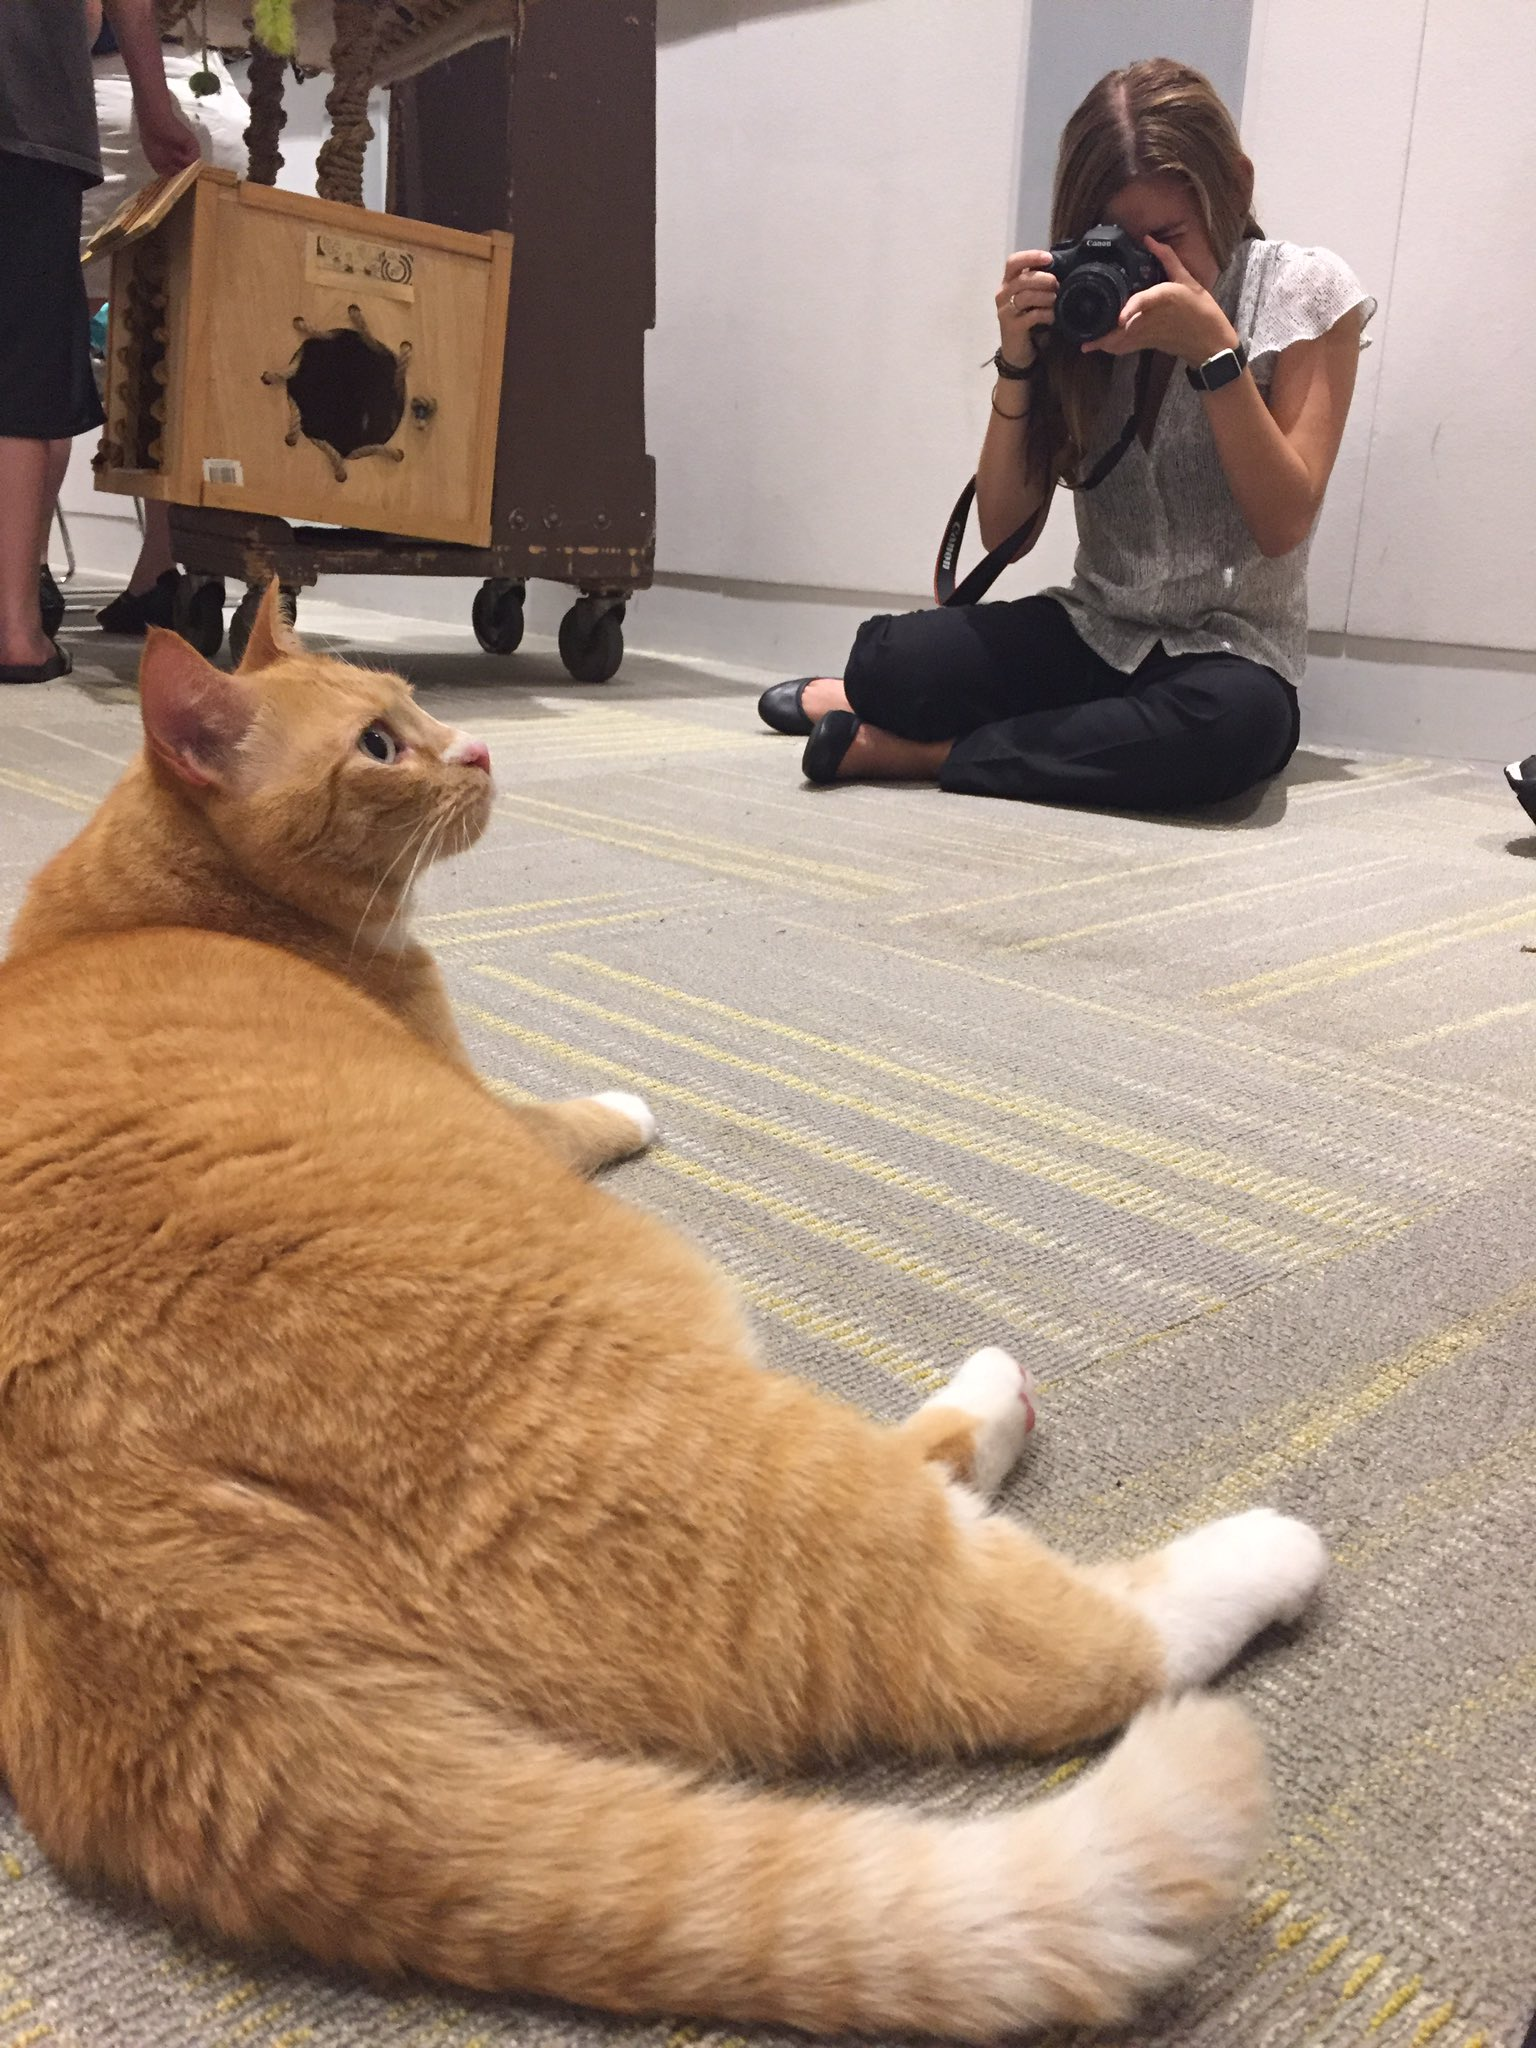 Thanks for coming to @DudetheCatDMNH's storytime, @BlueHenKris! #UDIntern #rockstarintern #Caturday #curatorialcats https://t.co/ZIhxWZdzHa